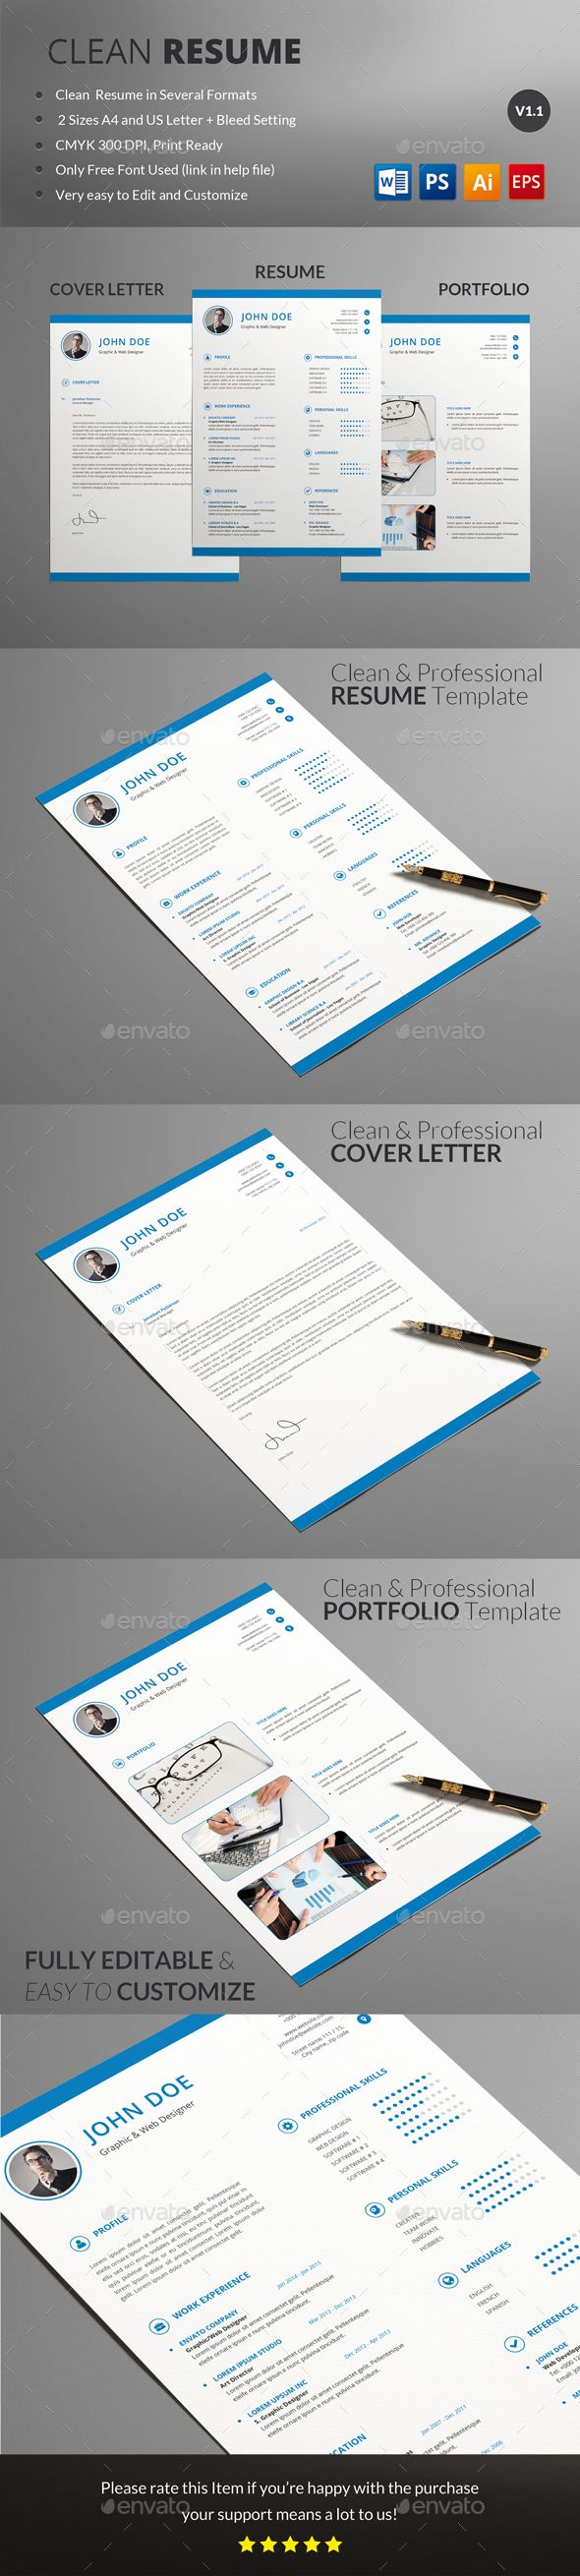 Resume Template PSD, Vector EPS, AI. Download here: http://graphicriver.net/item/resume/15220857?ref=ksioks